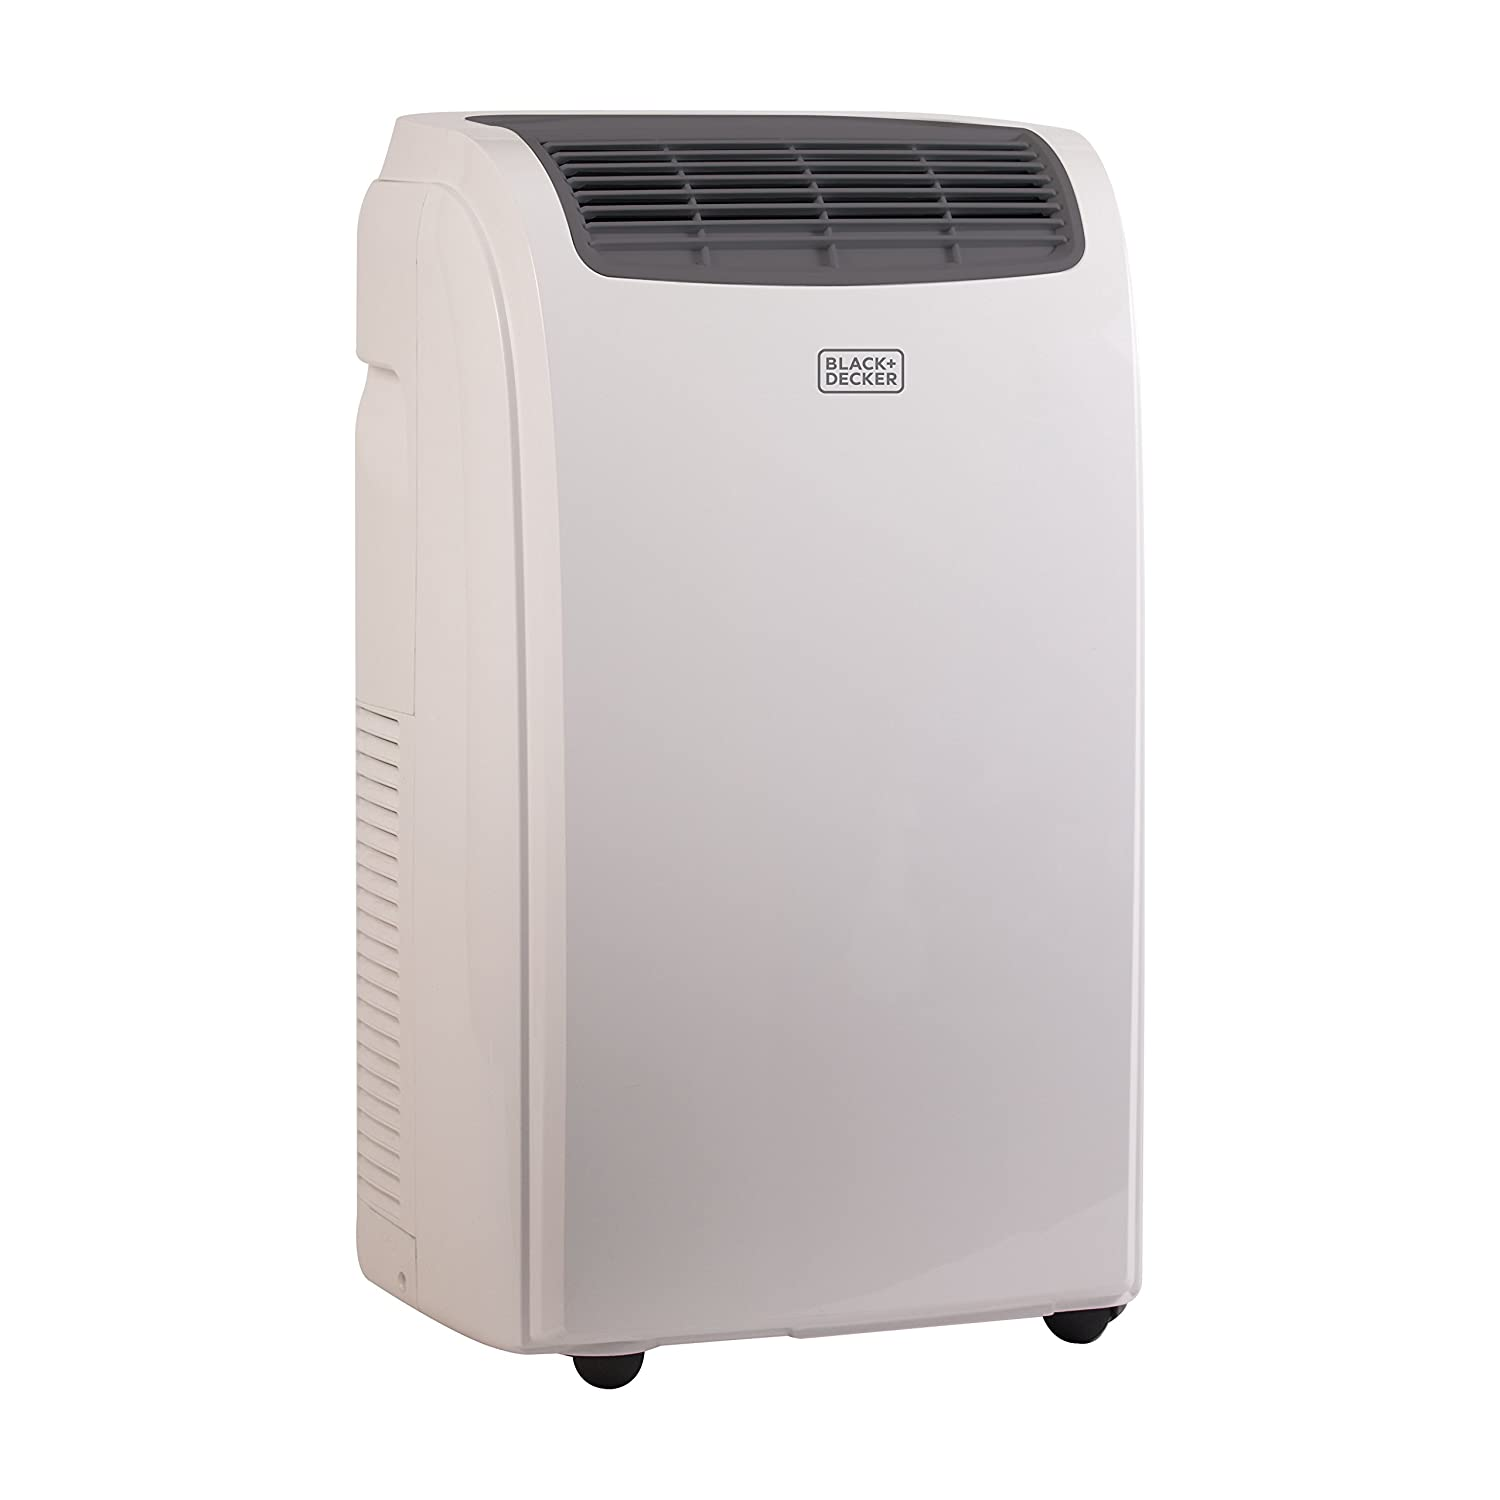 BLACK+DECKER BPACT08WT 8000 BTU Portable Air Conditioner with Remote Control  sc 1 st  Outdoorzer.com & Camping Tent Air Conditioner - Finding The Best Solution